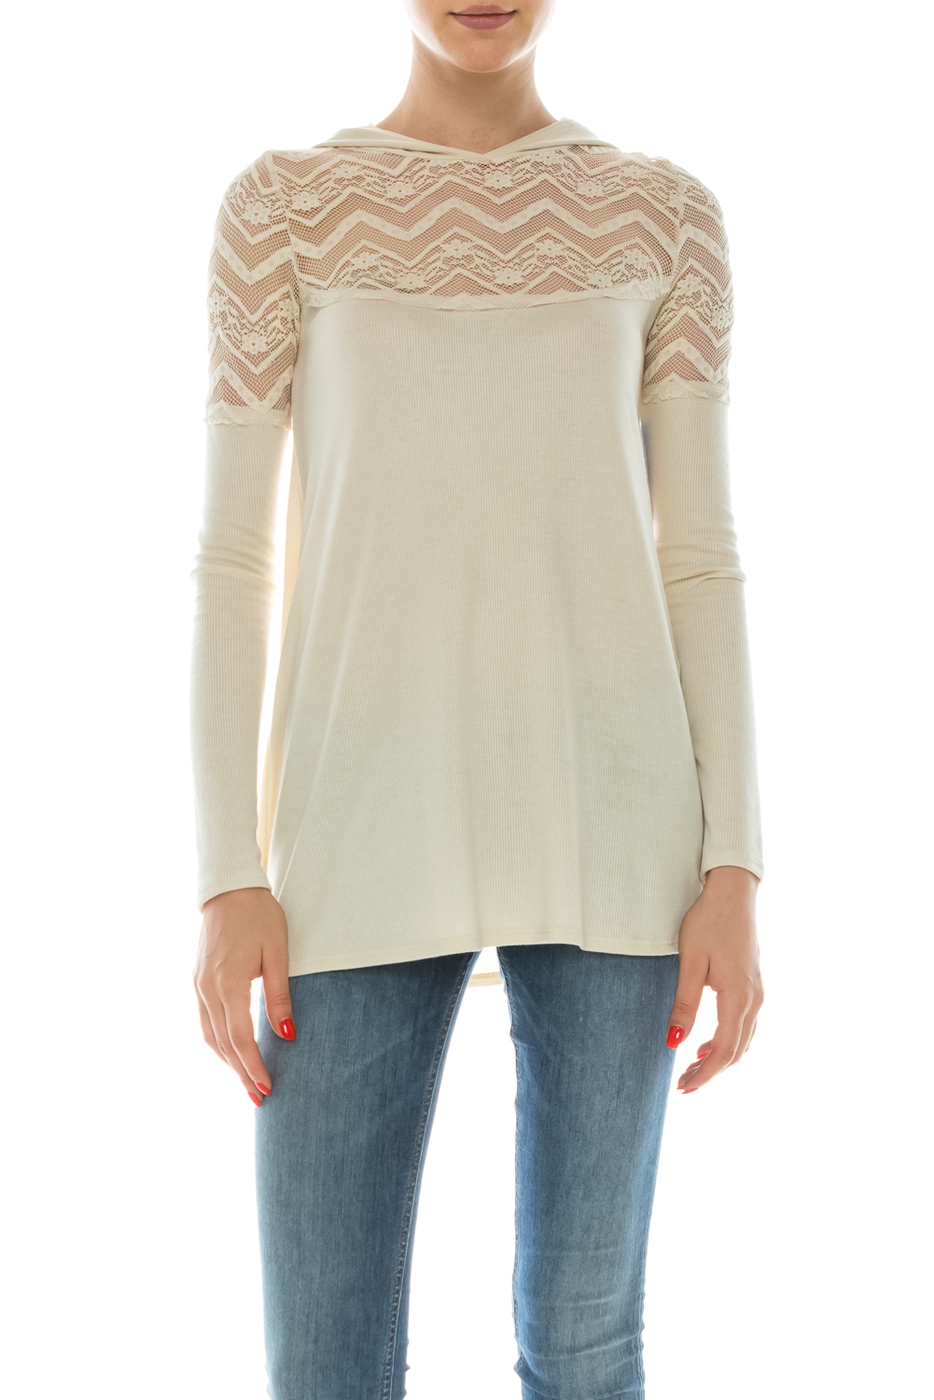 LACE HOOD TOP - orangeshine.com